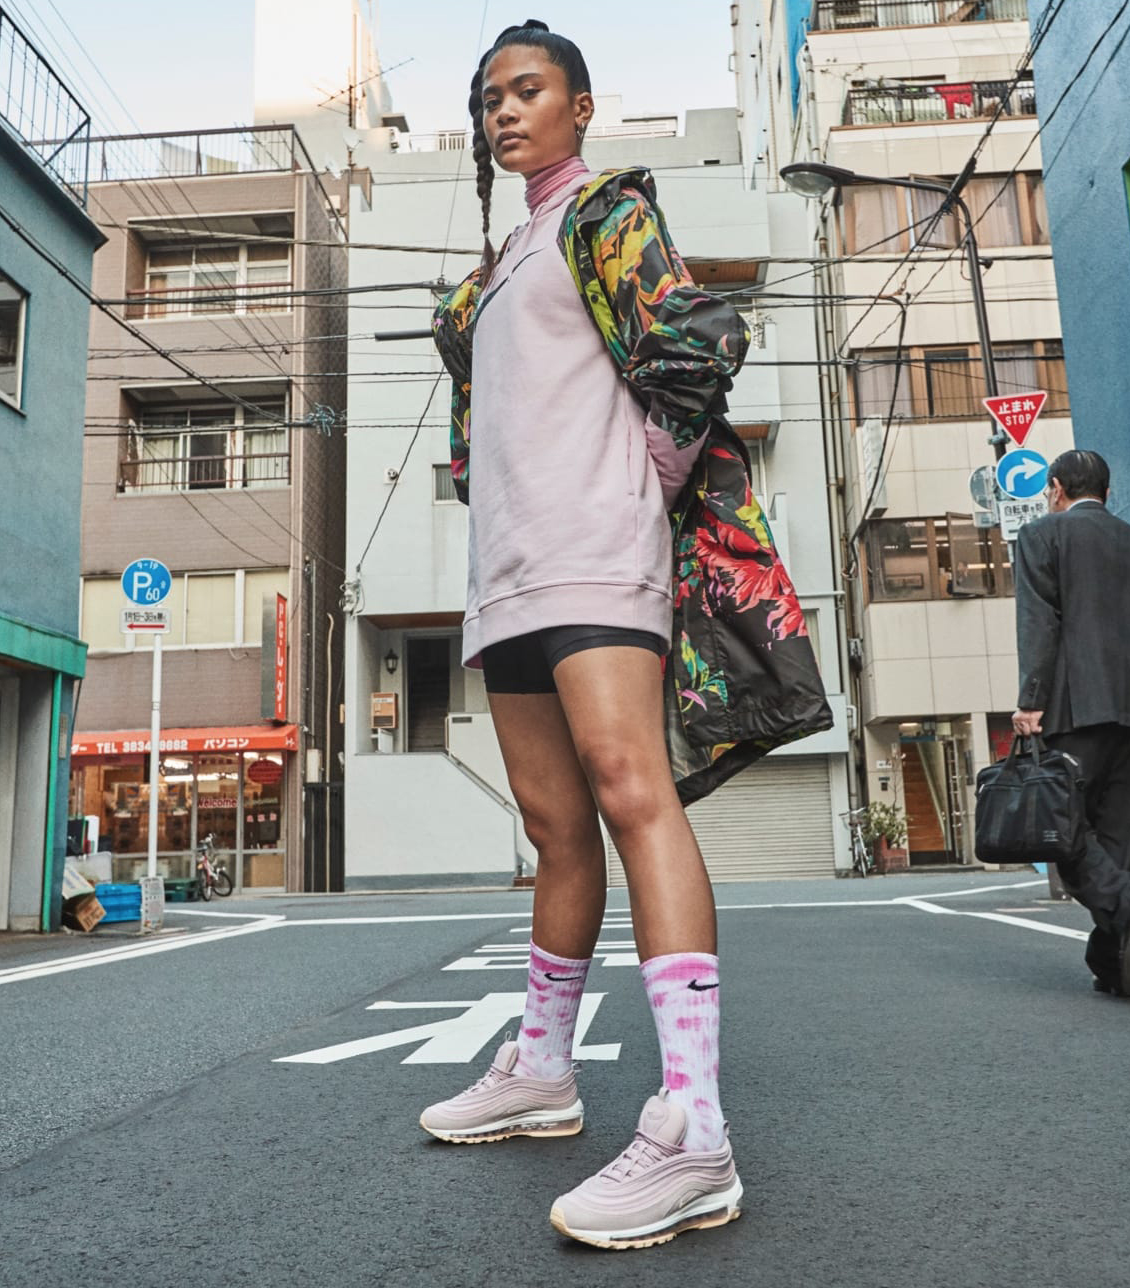 various colors 919d9 b24ba Girl wearing Nike Air Max 97 shoes in pink and white with Nike Sportswear  Pack 2019 collection clothing. Street style in Asia.